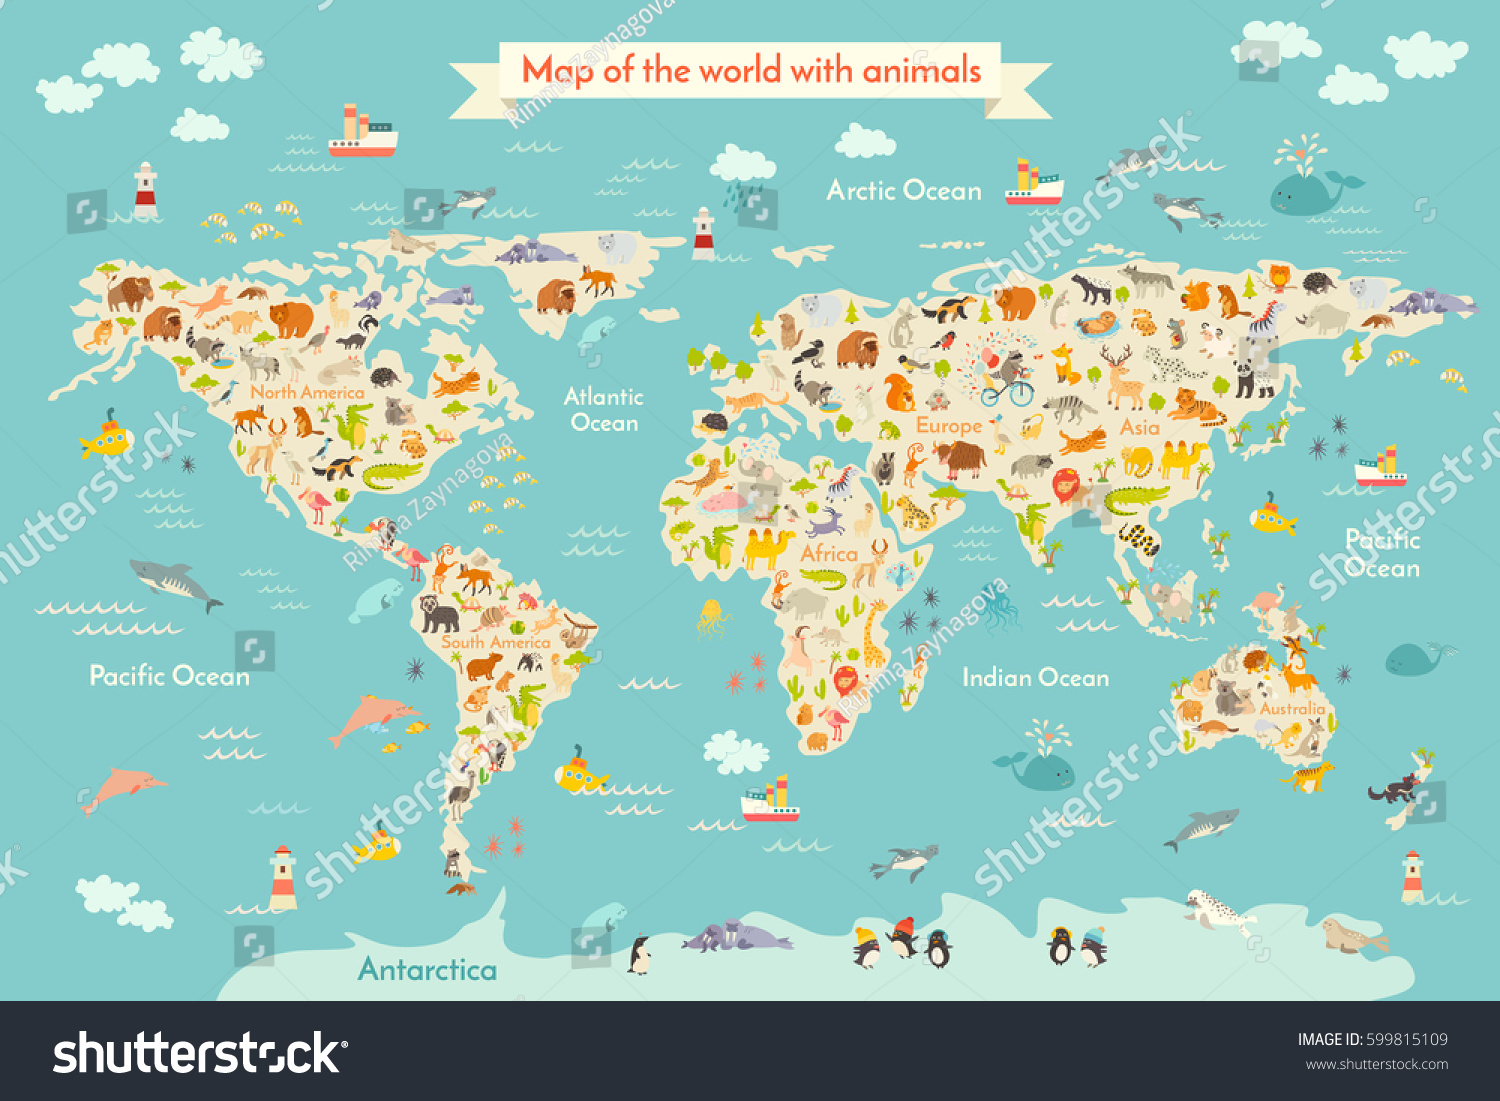 Map animal kid continent world animated vector de stock599815109 map animal for kid continent of world animated childs map vector illustration animals gumiabroncs Images